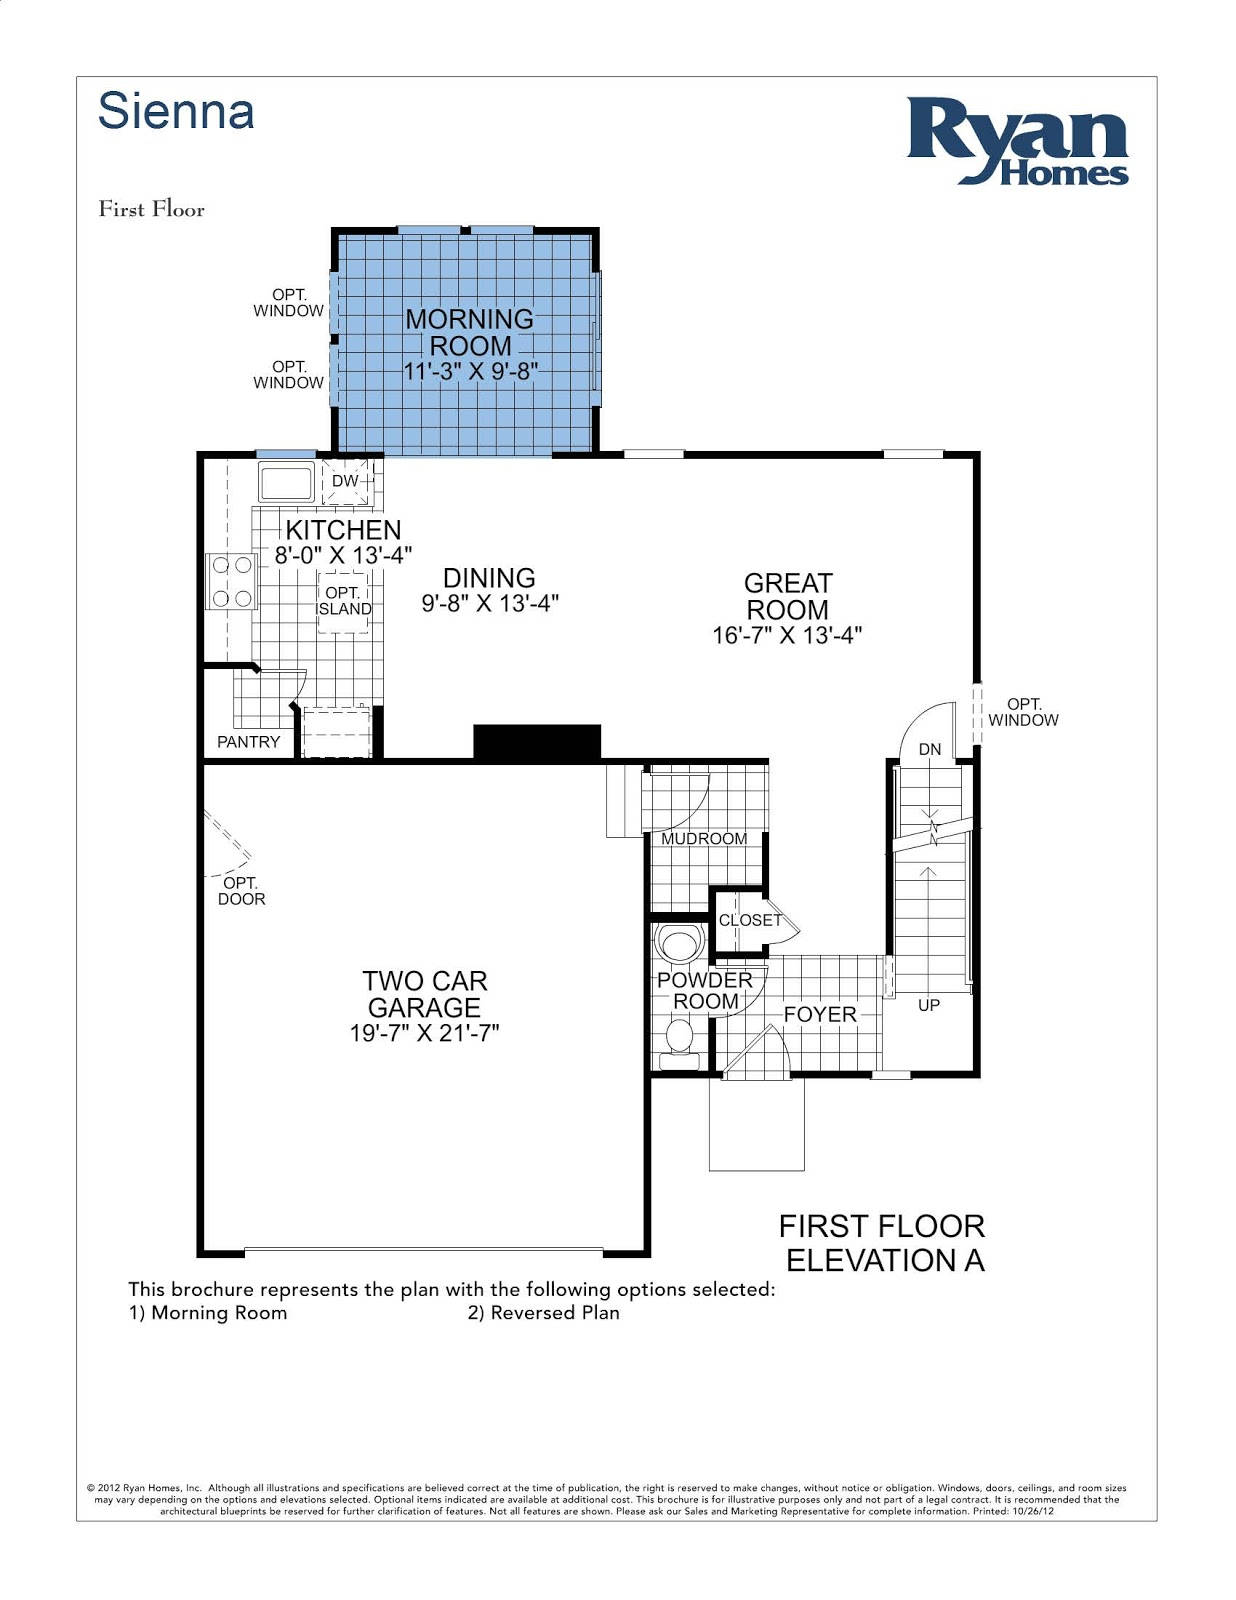 Sienna ryan home floor plan house design plans for Customize floor plans